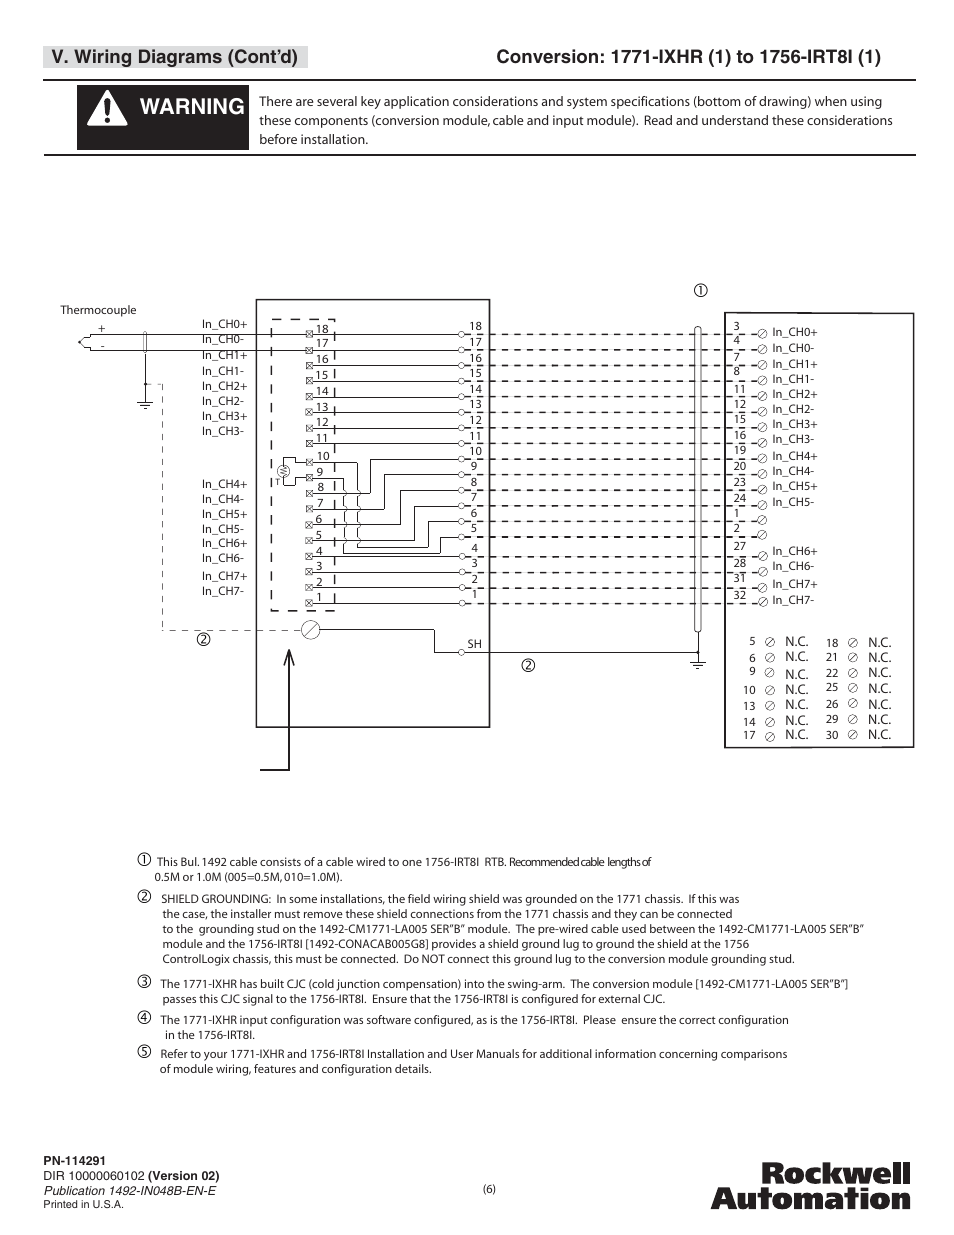 medium resolution of warning v wiring diagrams cont d rockwell automation 1492 cm1771 la005 analog i o conversion module user manual page 6 8